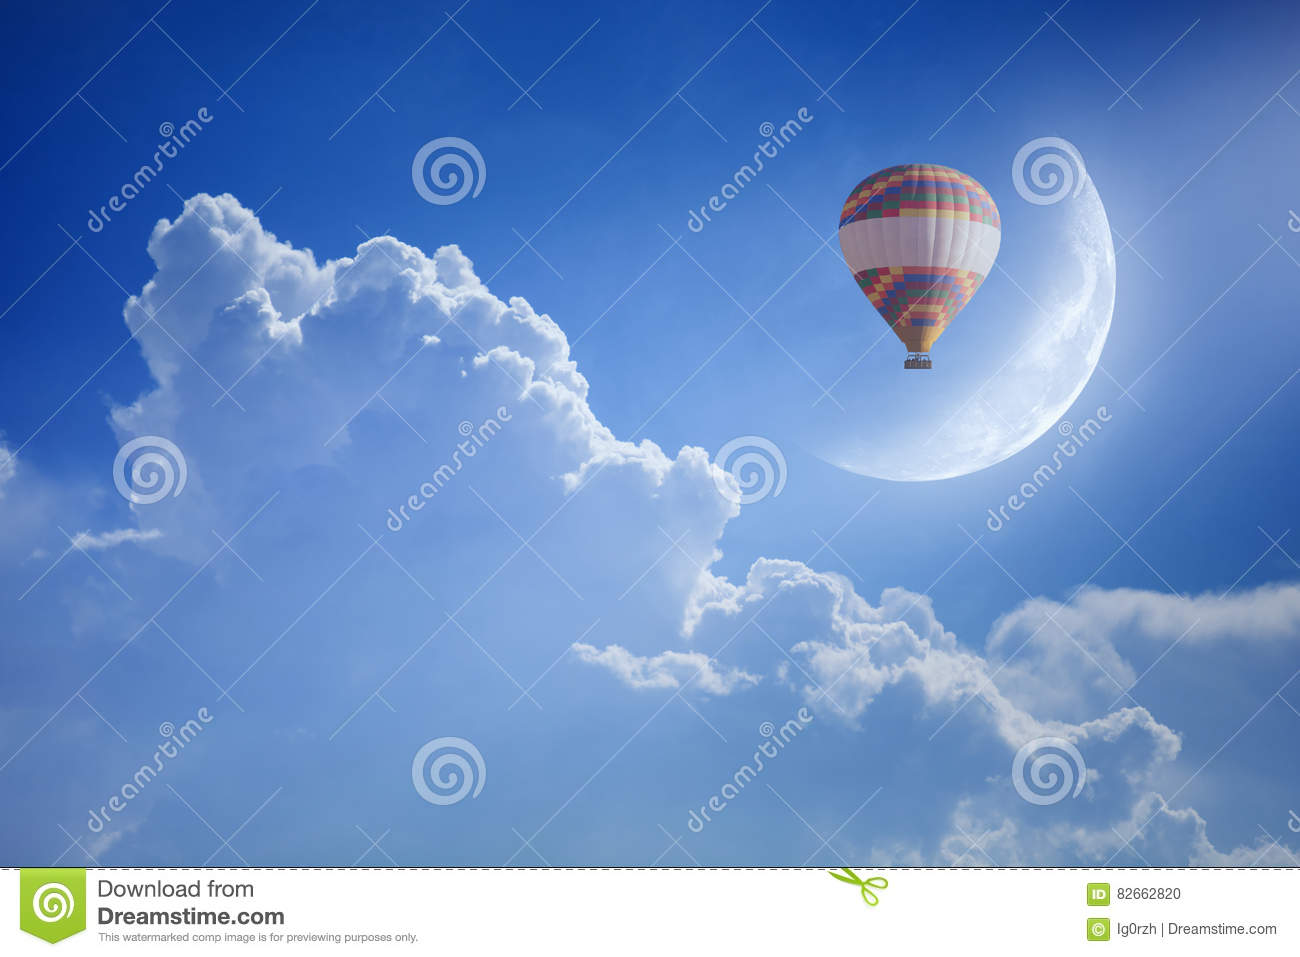 Colorful hot air balloon rise up into blue sky above white cloud